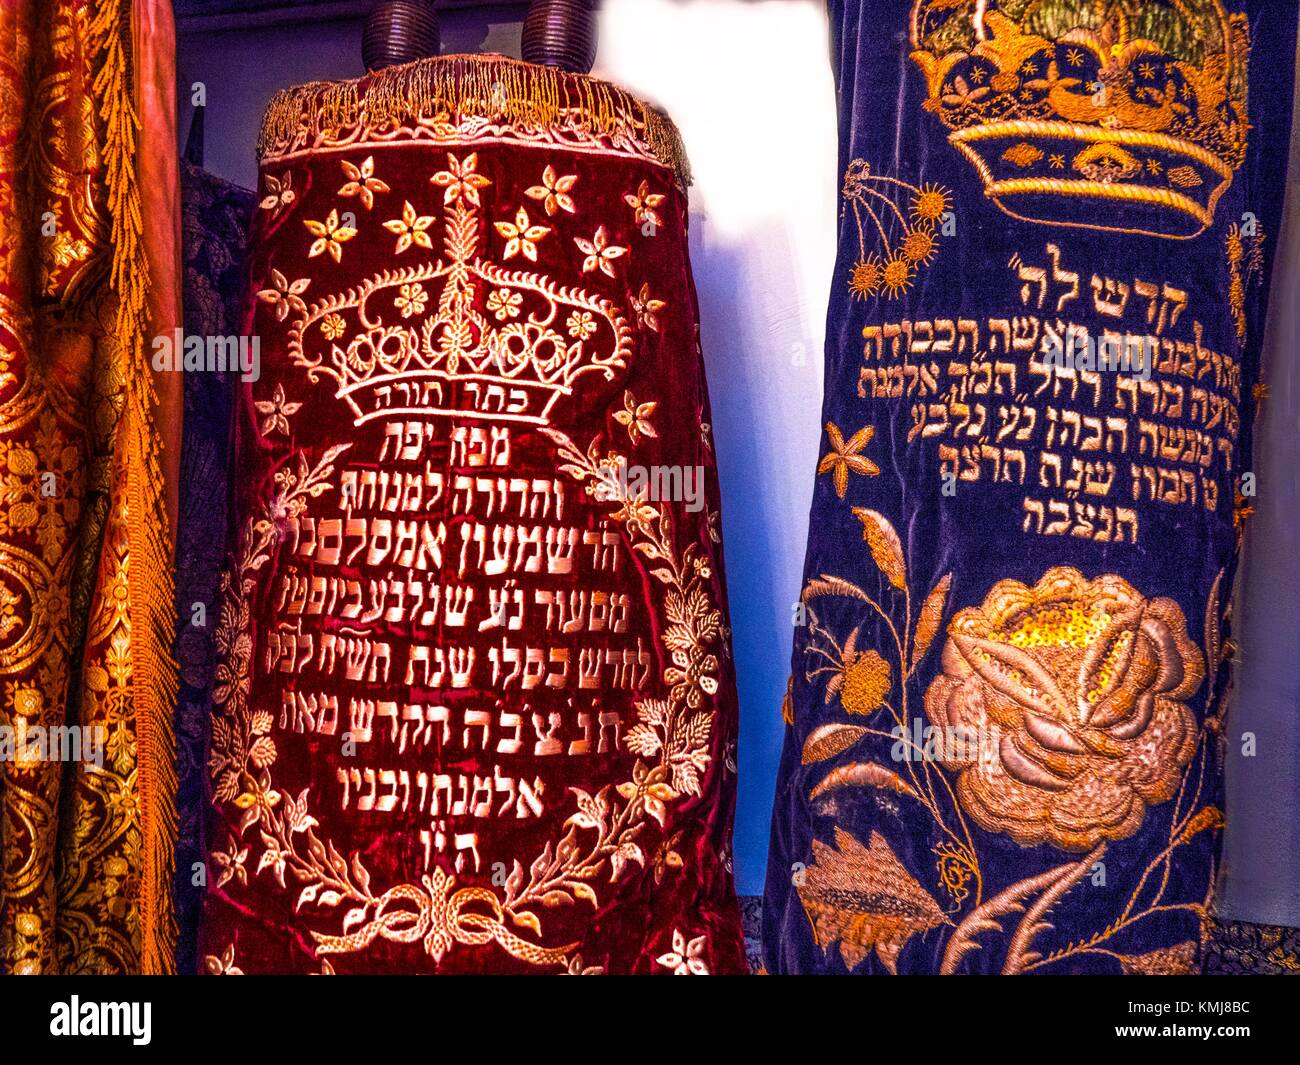 Morocco, Tangier, 'Torah' religious rolls, at the former Synagogue of the 'Medina' at Tangier. - Stock Image